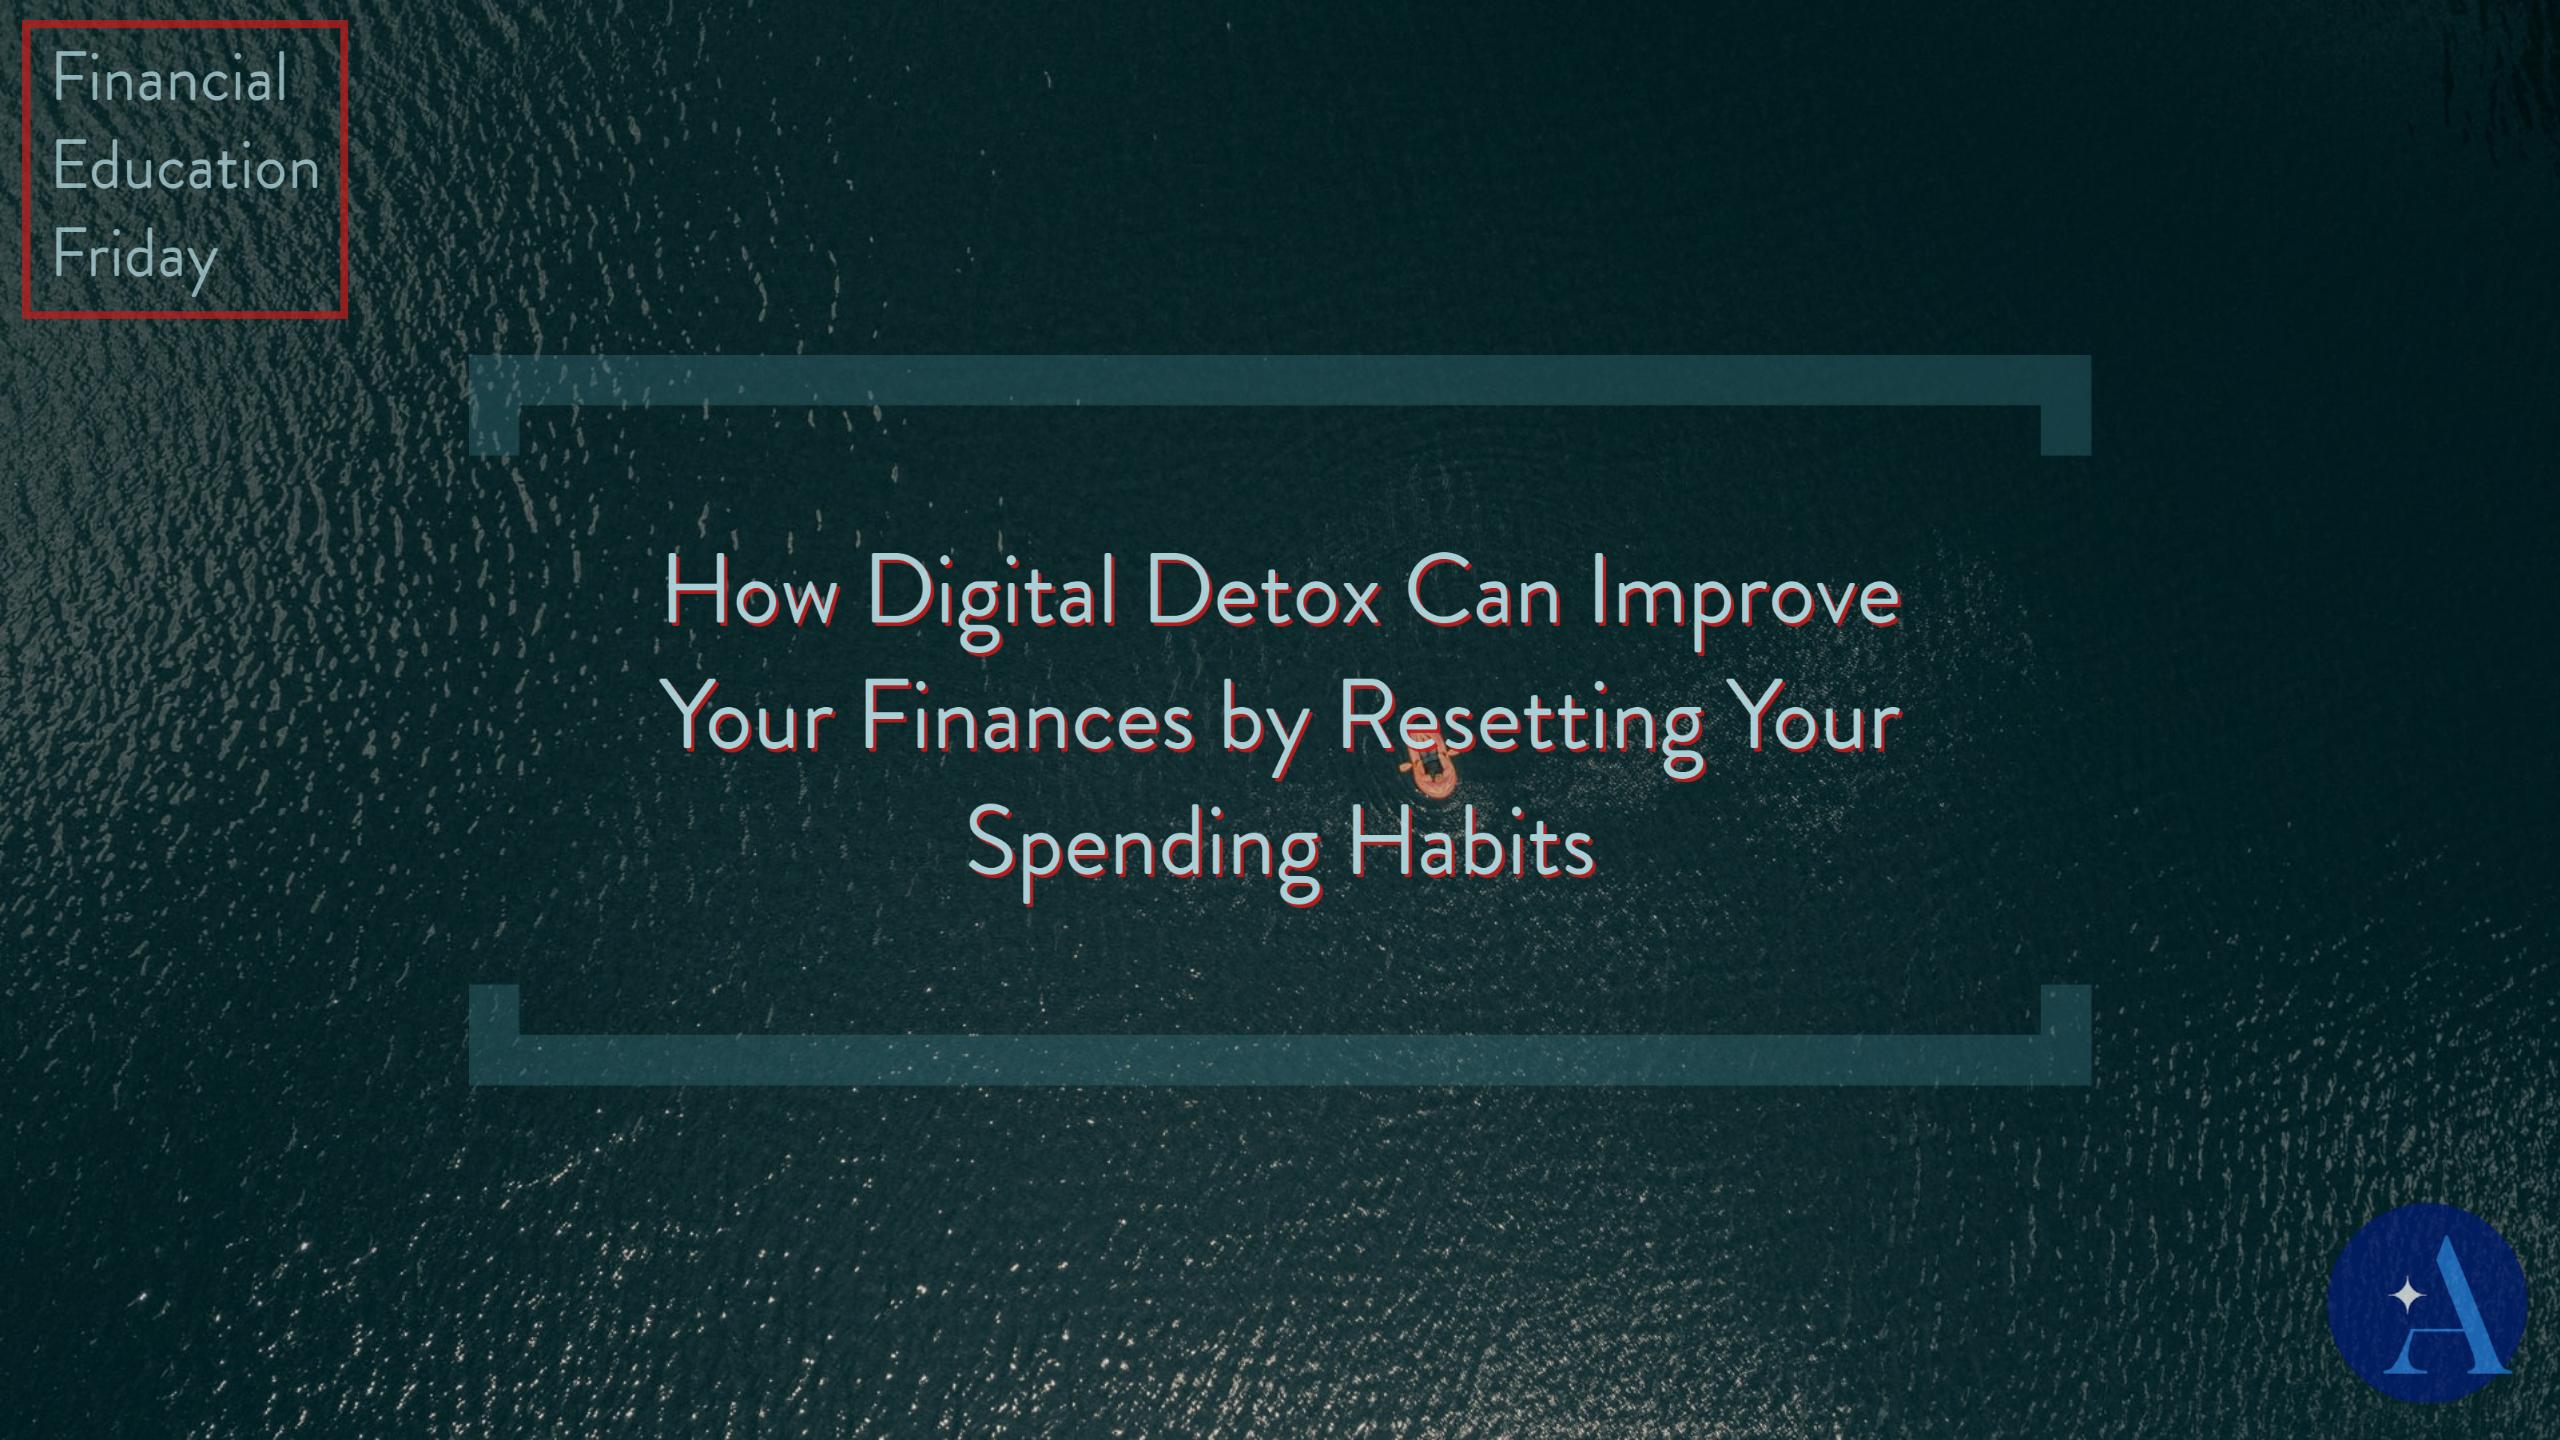 FinEdFriday: How Digital Detox Can Improve Your Finances by Resetting Your Spending Habits Thumbnail